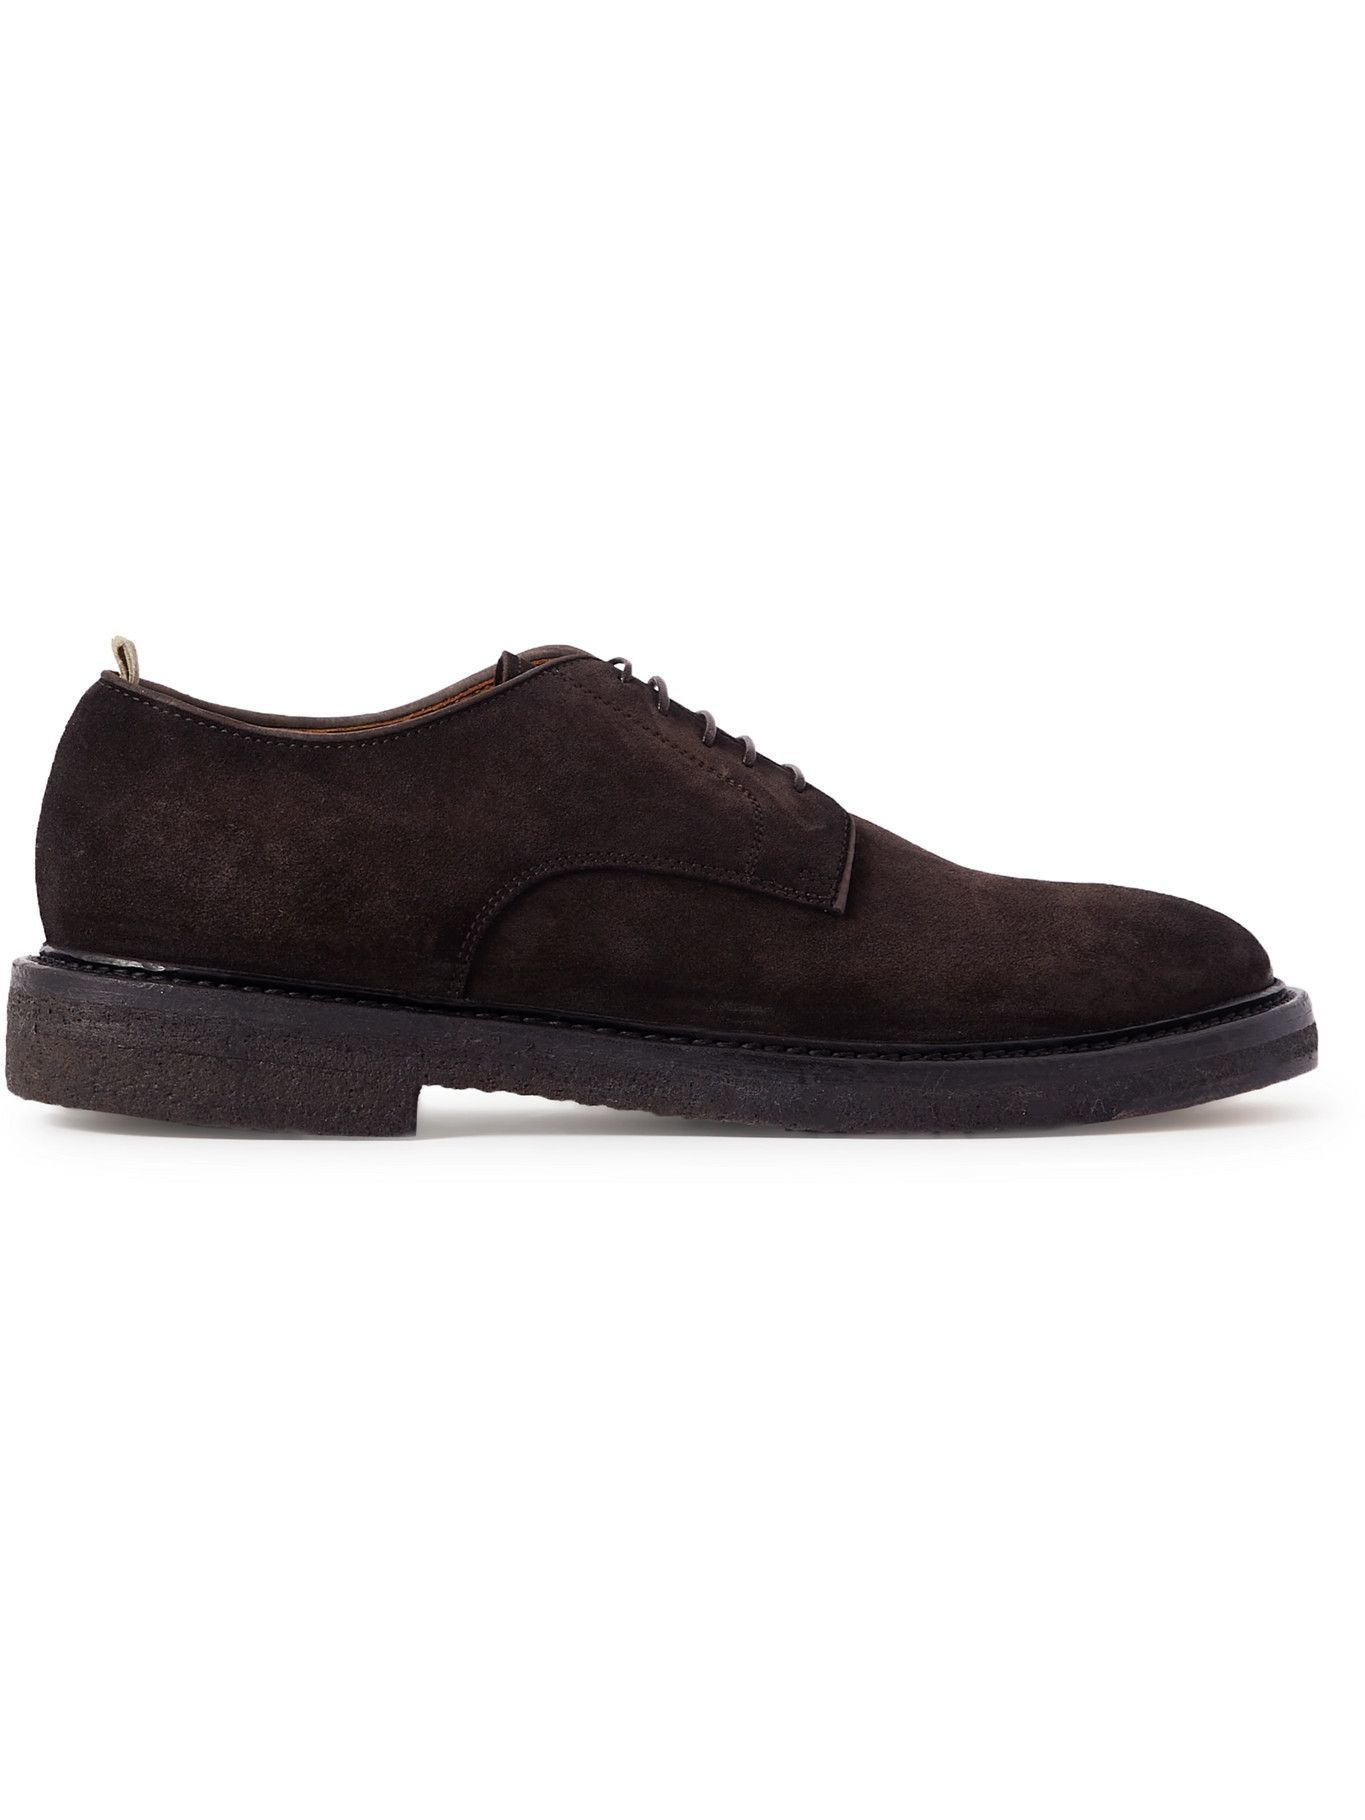 Photo: OFFICINE CREATIVE - Hopkins Suede Derby Shoes - Brown